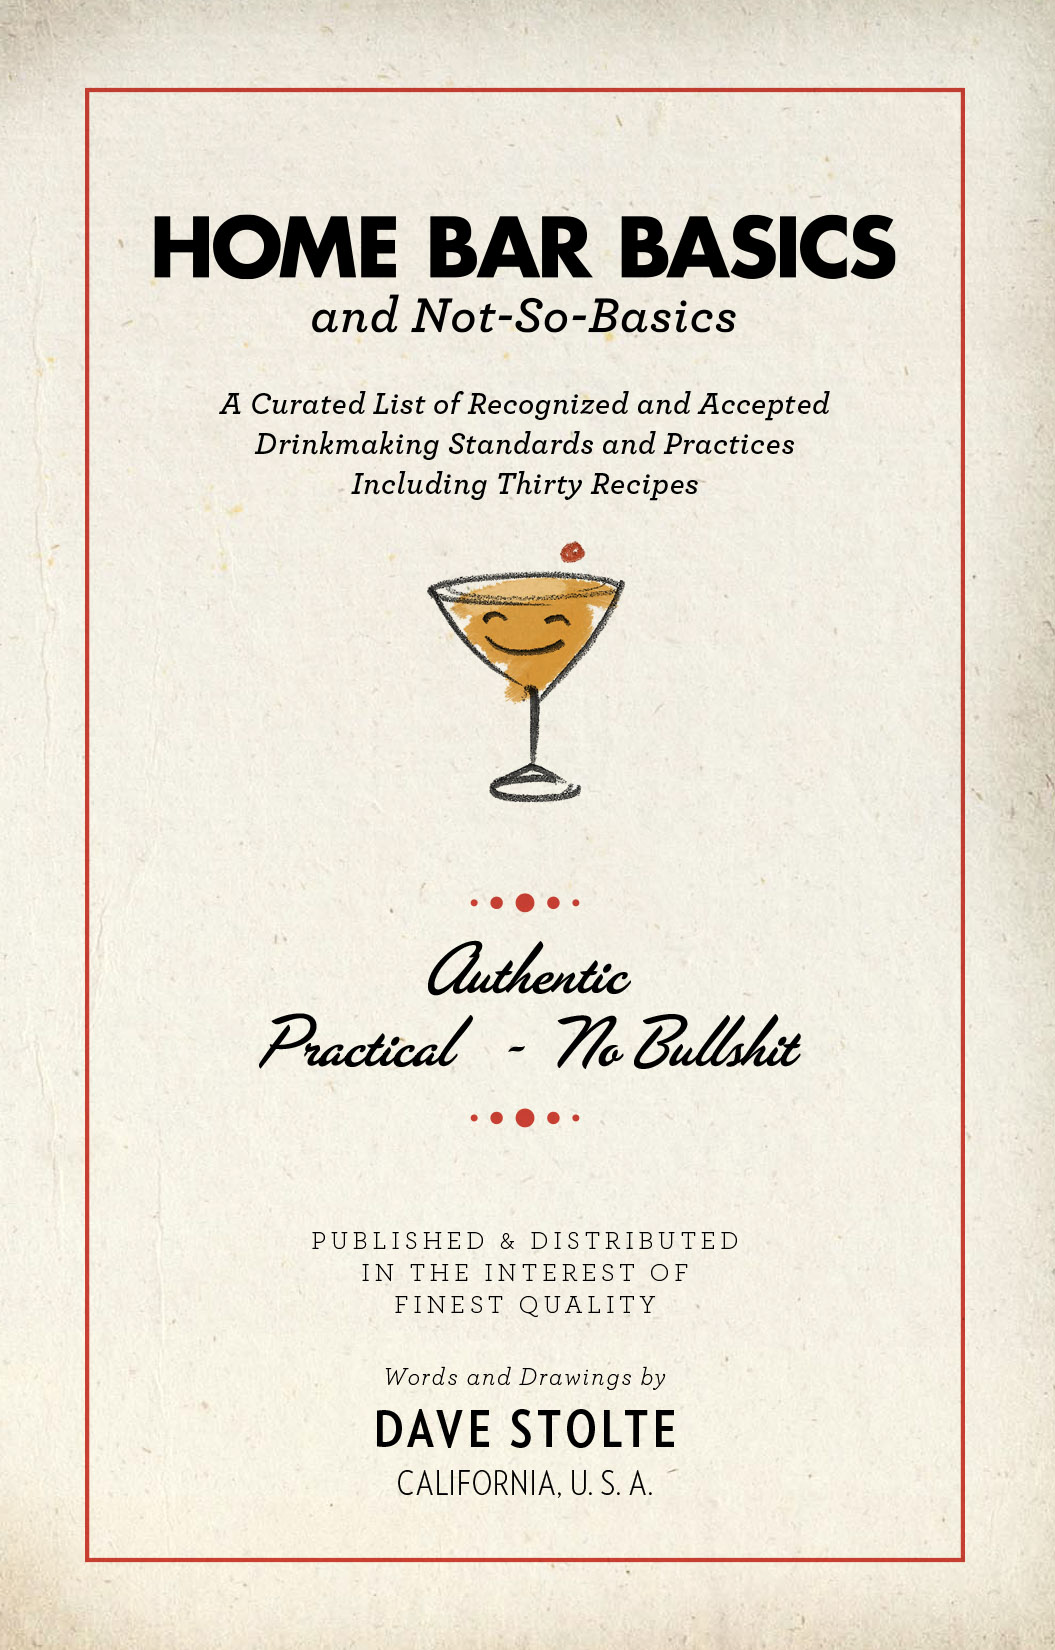 Home Bar Basics (and Not-So-Basics) 2nd Edition by Dave Stolte